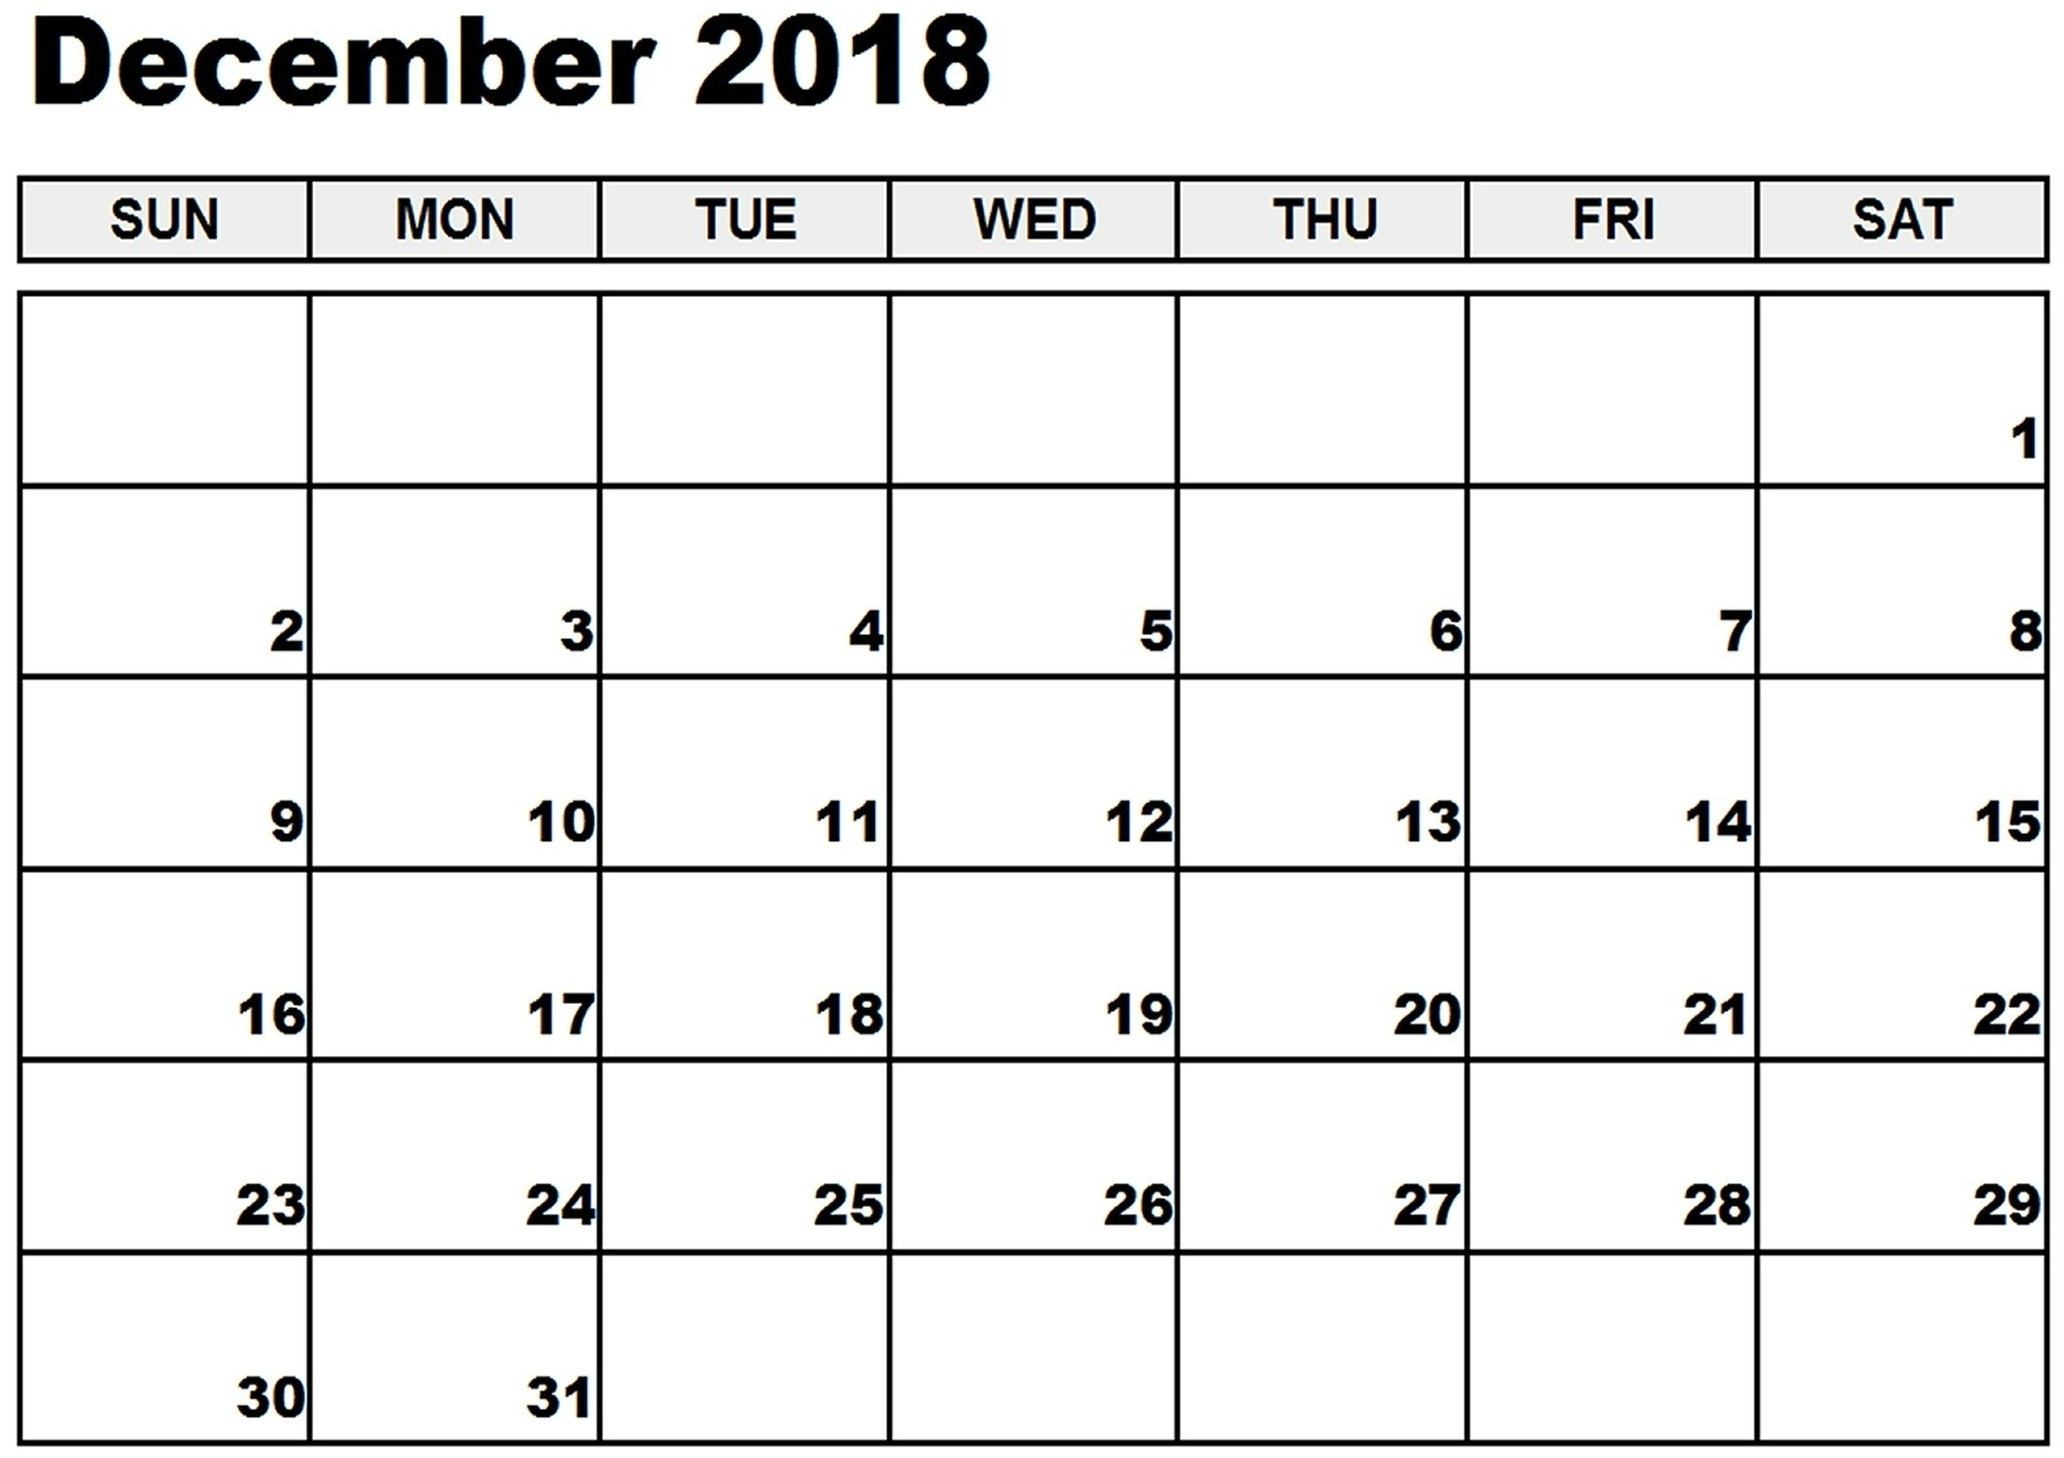 December Calendar 2018 For Office By Week